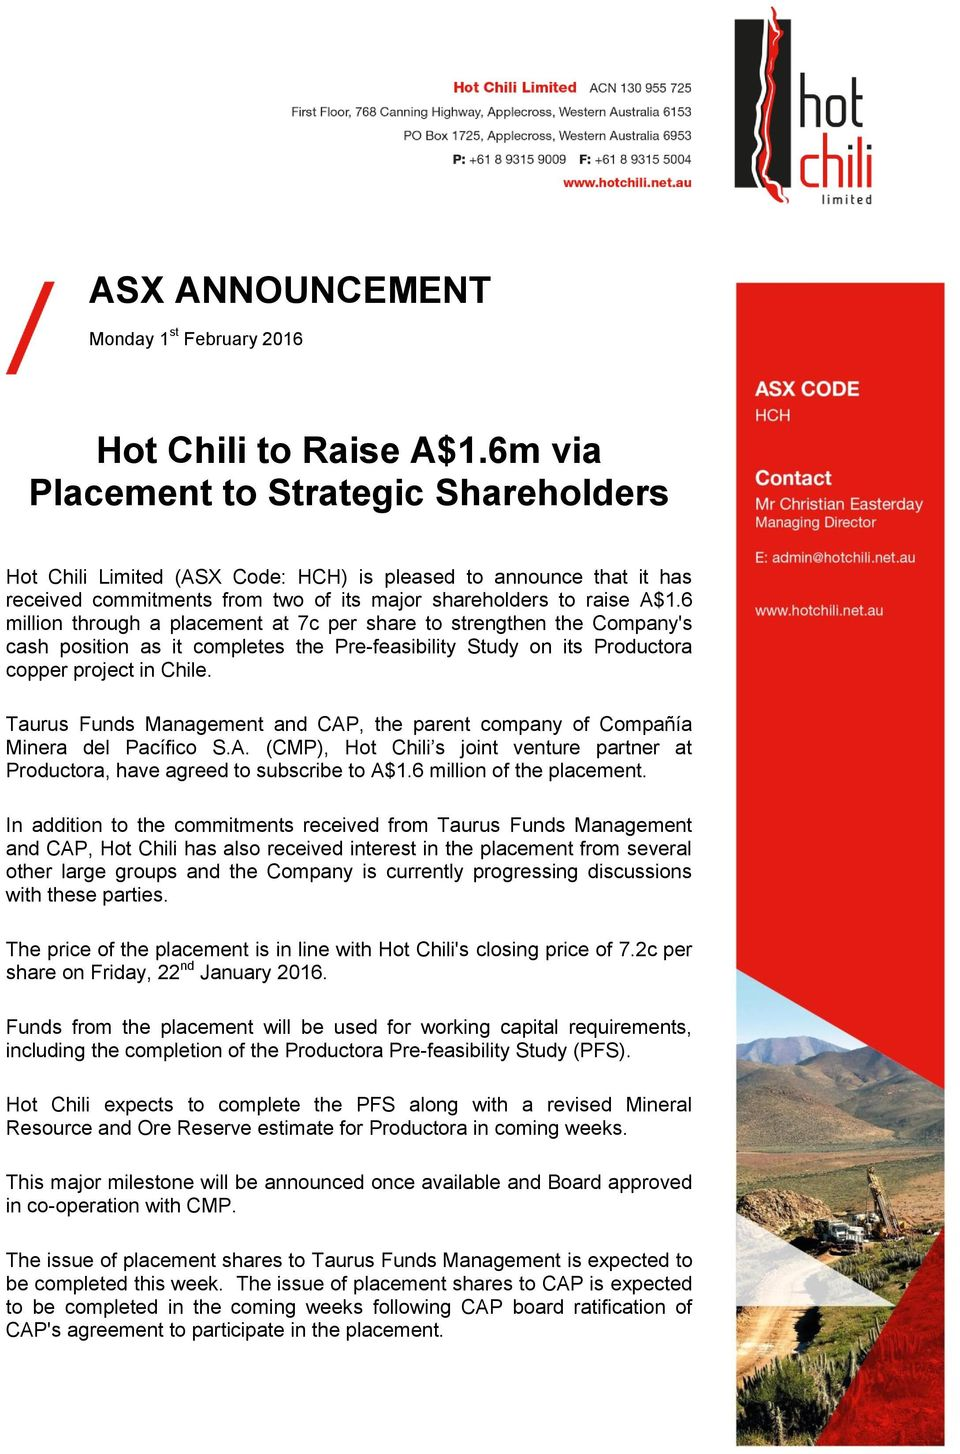 6 million through a placement at 7c per share to strengthen the Company's cash position as it completes the Pre-feasibility Study on its Productora copper project in Chile.